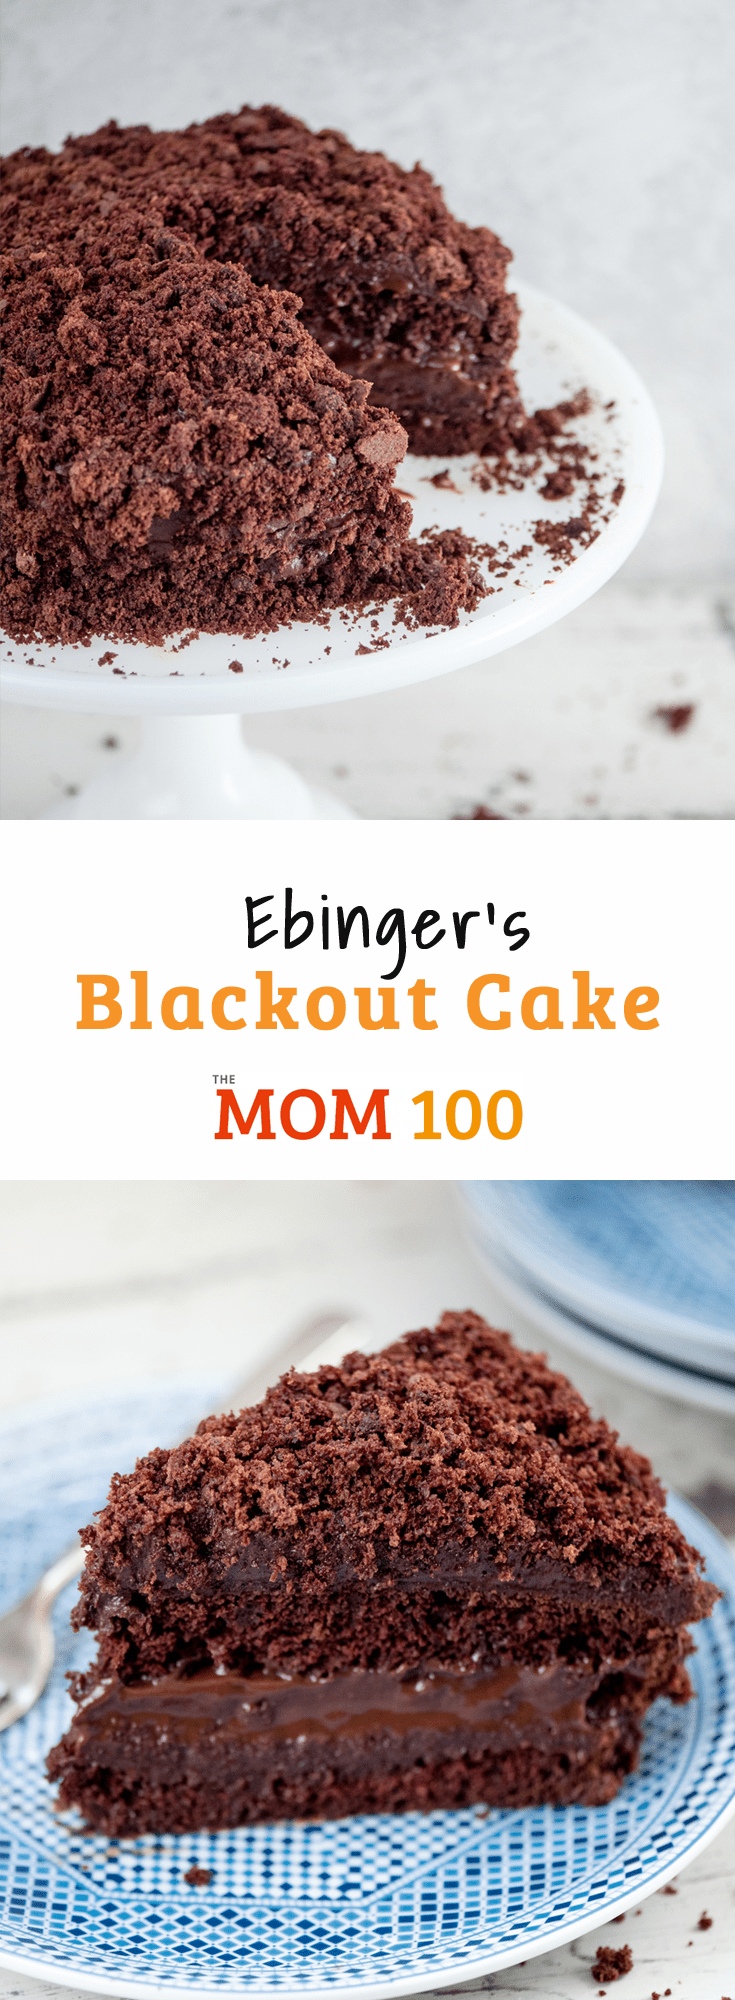 Ebinger's Blackout Cake is the chocolatey, moist and legendary cake from the popular Brooklyn bakery that disappeared in 1972.